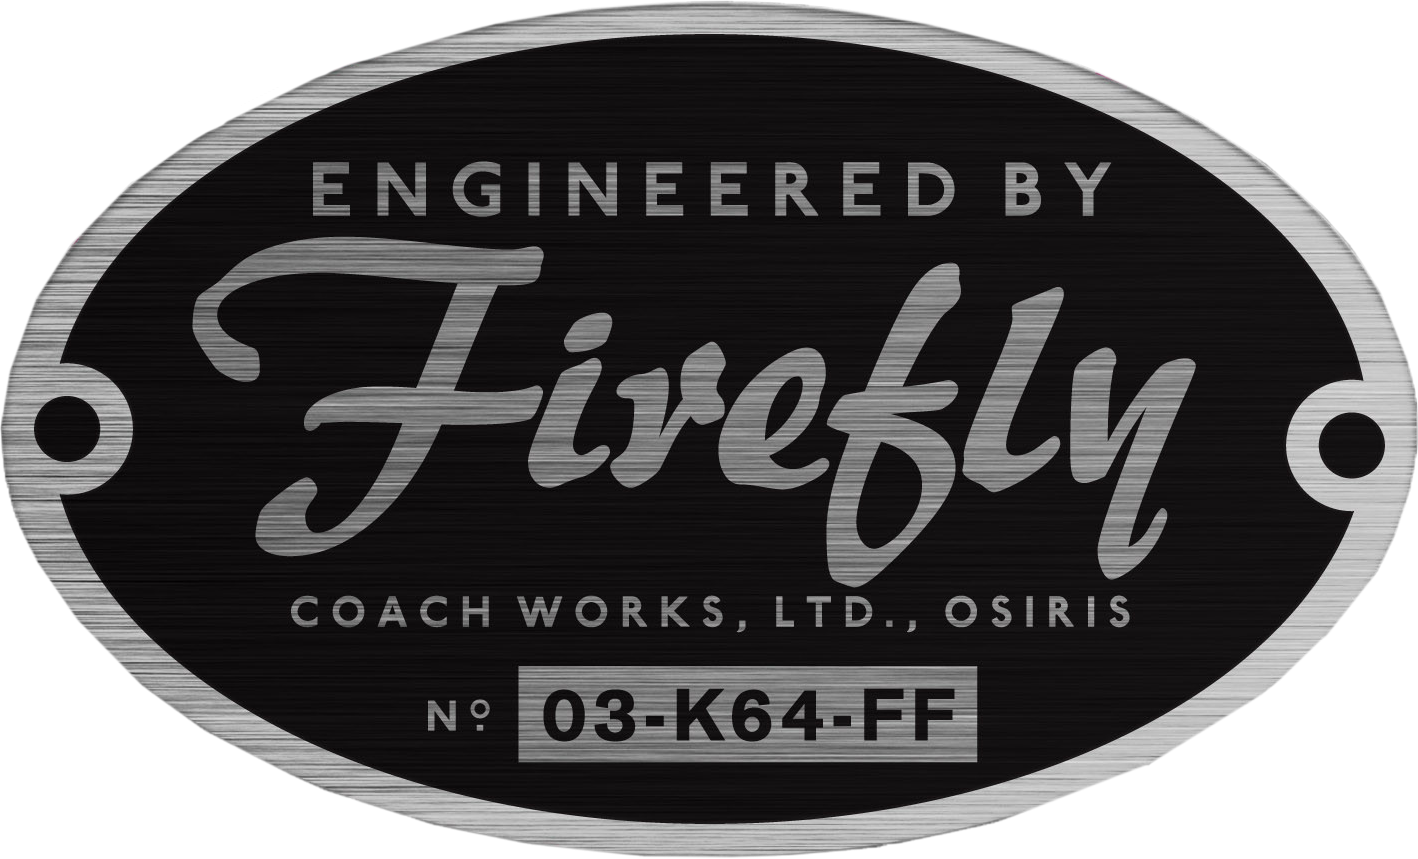 Fallout 4 png 101 decal. Engineered by firefly sticker